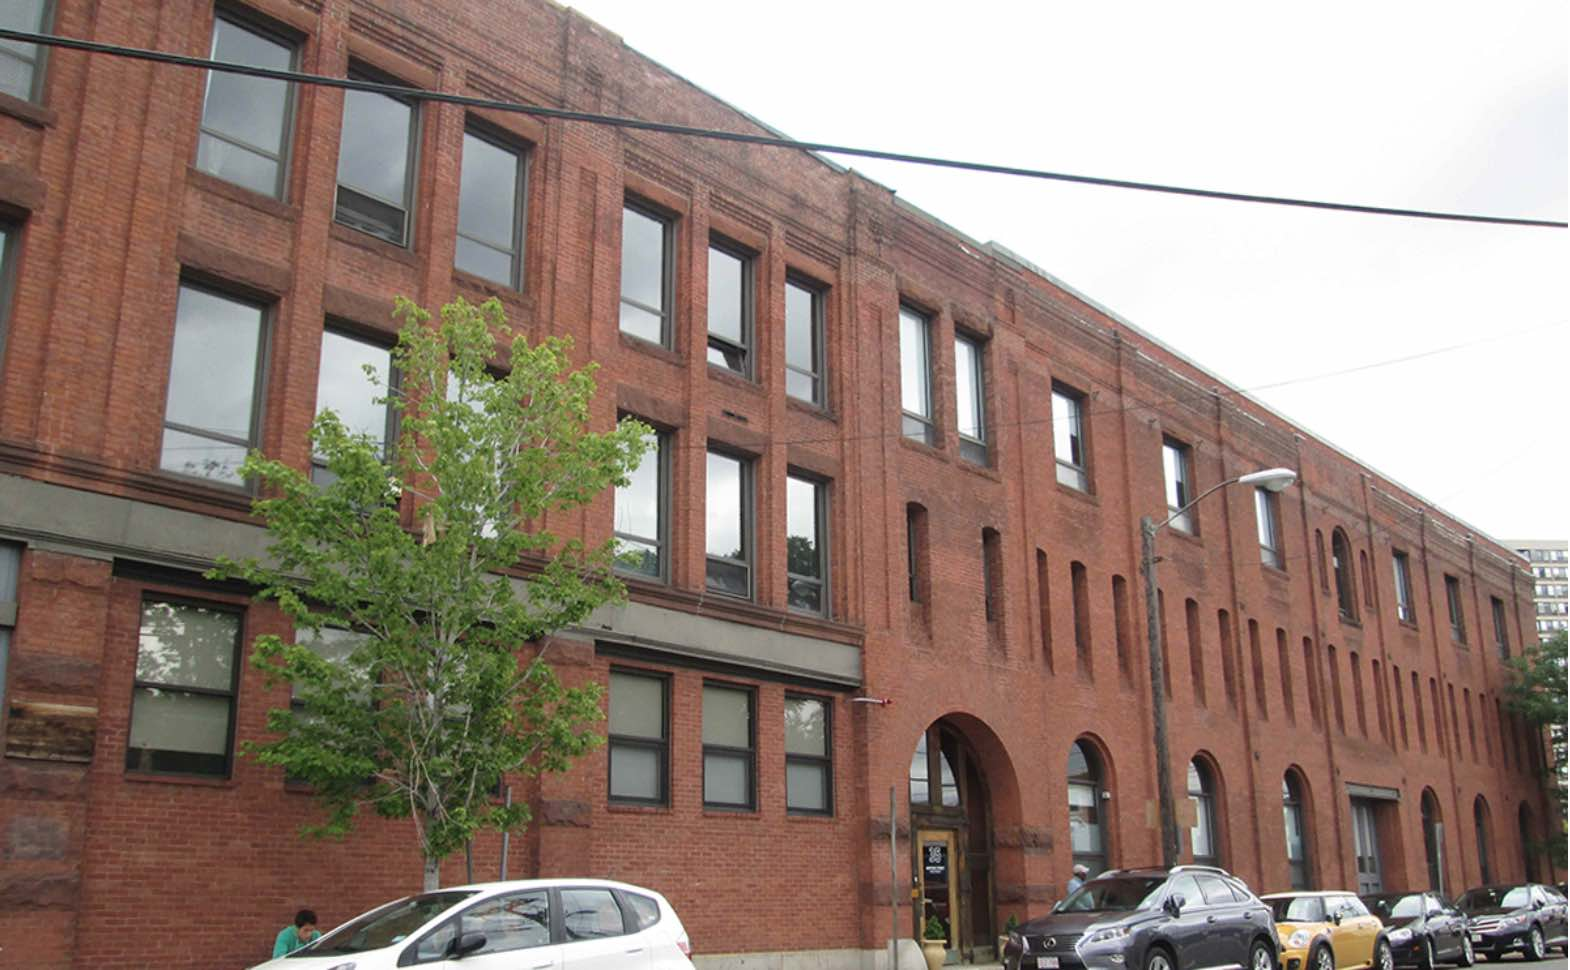 35 37 medford street union square somerville ma office building space normandy real estate partners